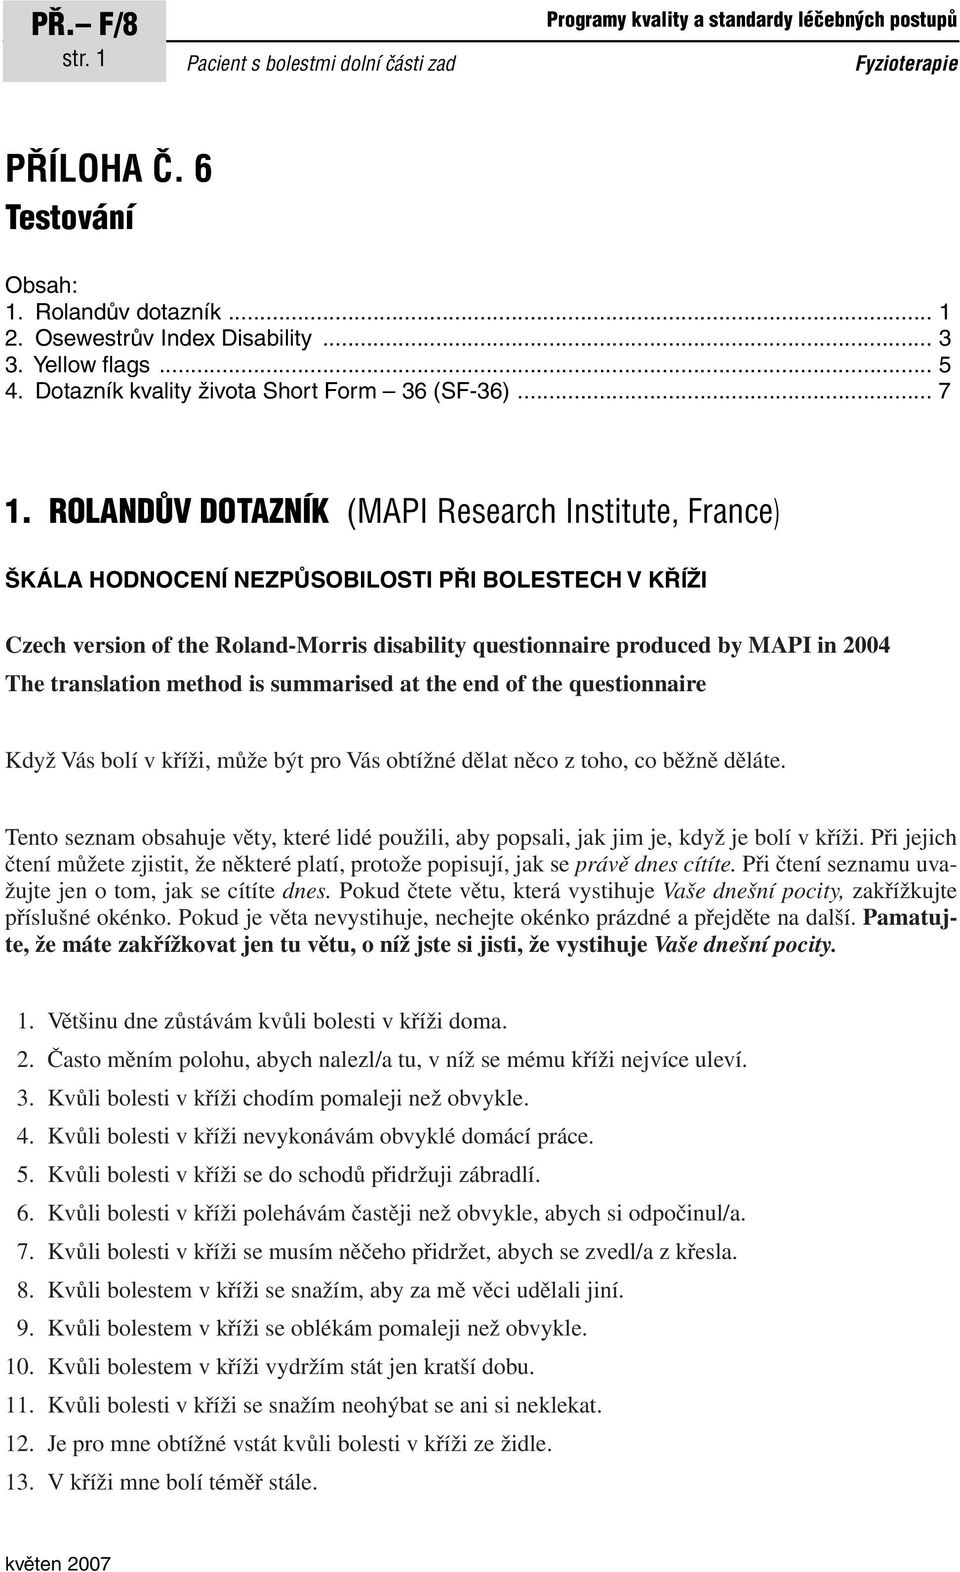 ROLANDŮV DOTAZNÍK (MAPI Research Institute, France) ŠKÁLA HODNOCENÍ NEZPŮSOBILOSTI PŘI BOLESTECH V KŘÍŽI Czech version of the Roland-Morris disability questionnaire produced by MAPI in 2004 The